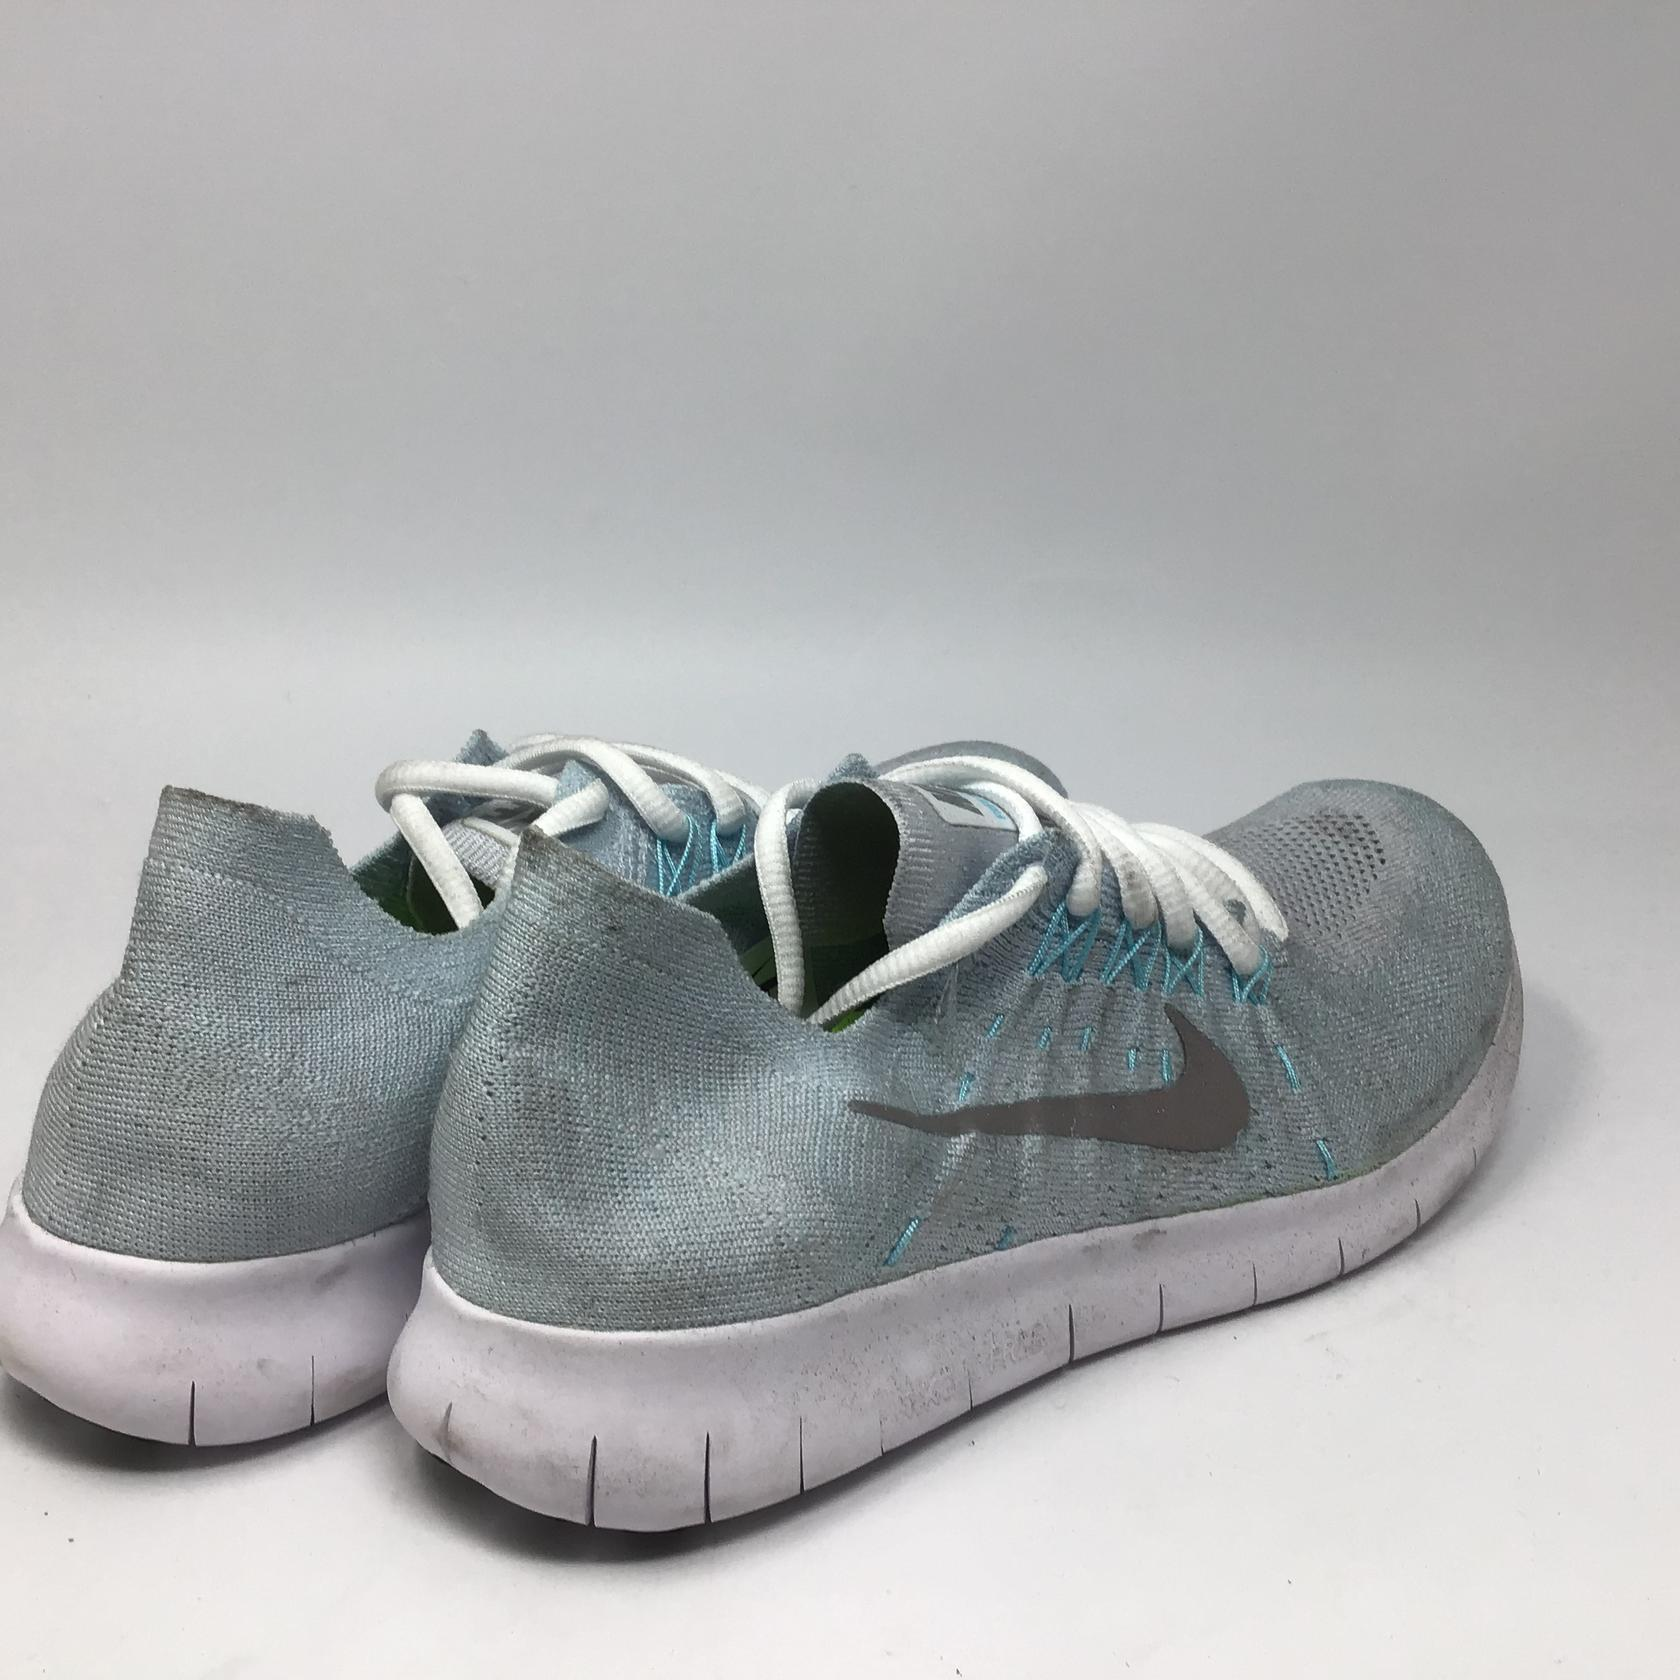 huge discount 5a041 c862e Details about Nike Womens Free RN Flyknit 2017 Running Shoe Pure  Platinum/Metallic Silver 9.0